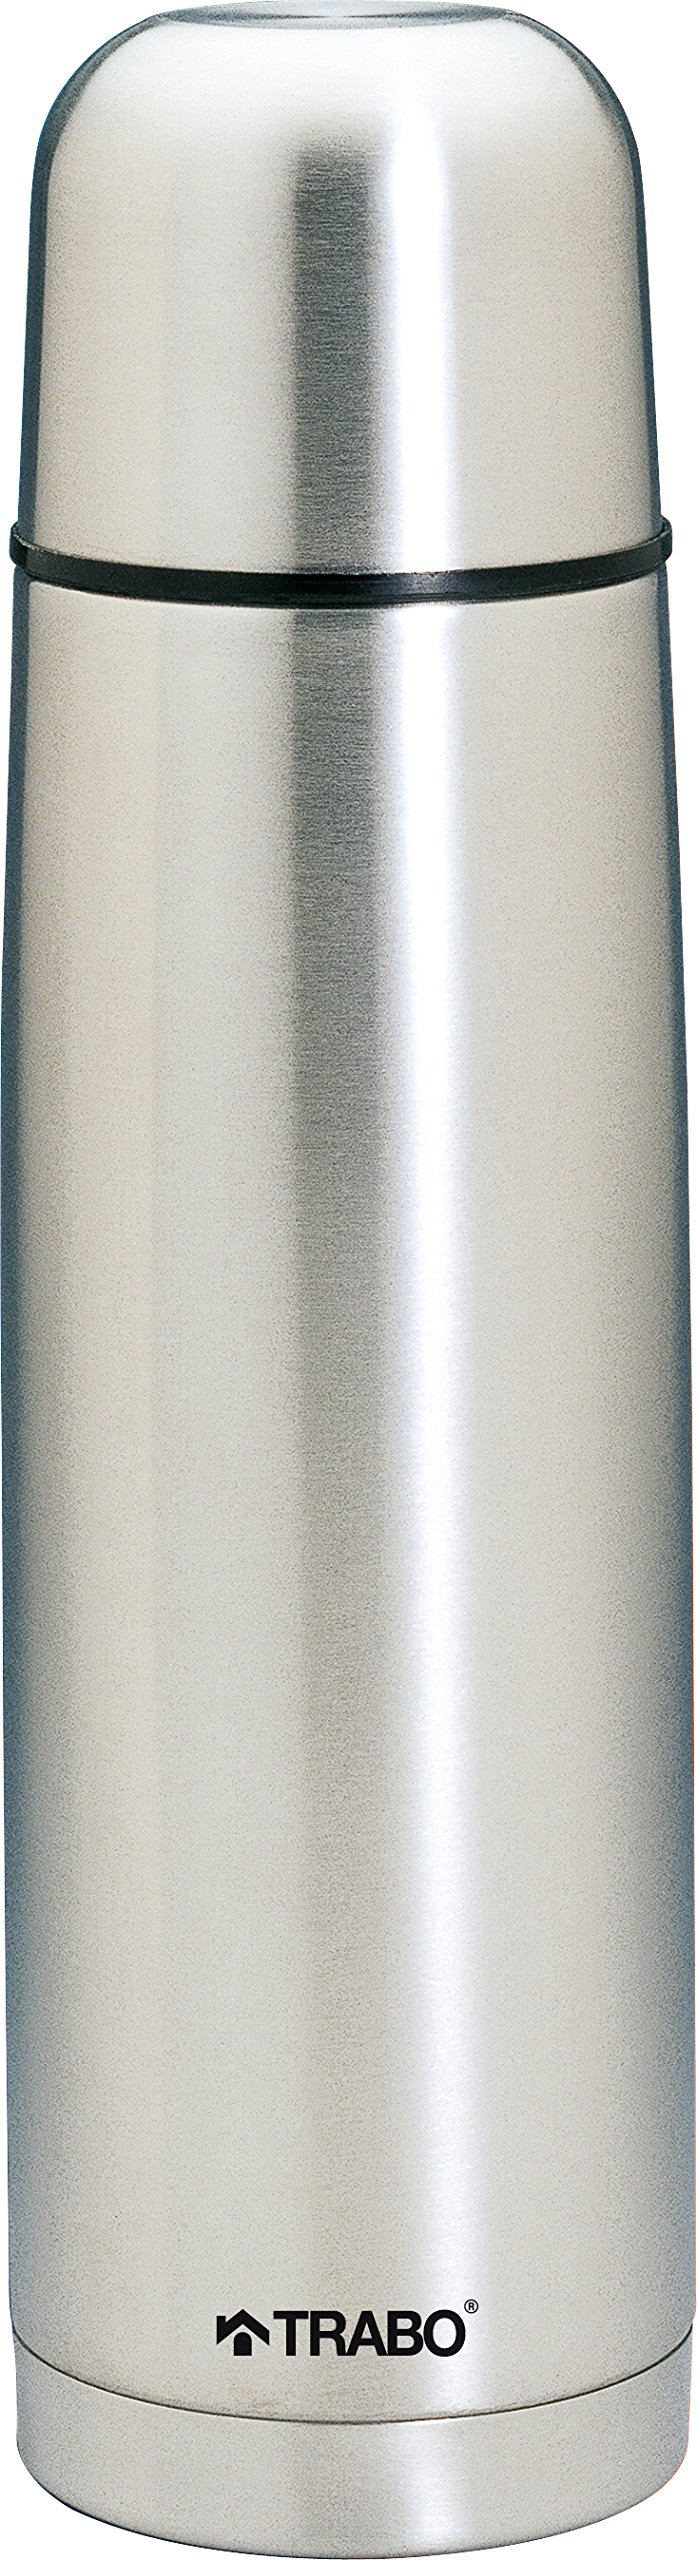 Trabo Dakota Stainless Steel Thermal Container, 1 L